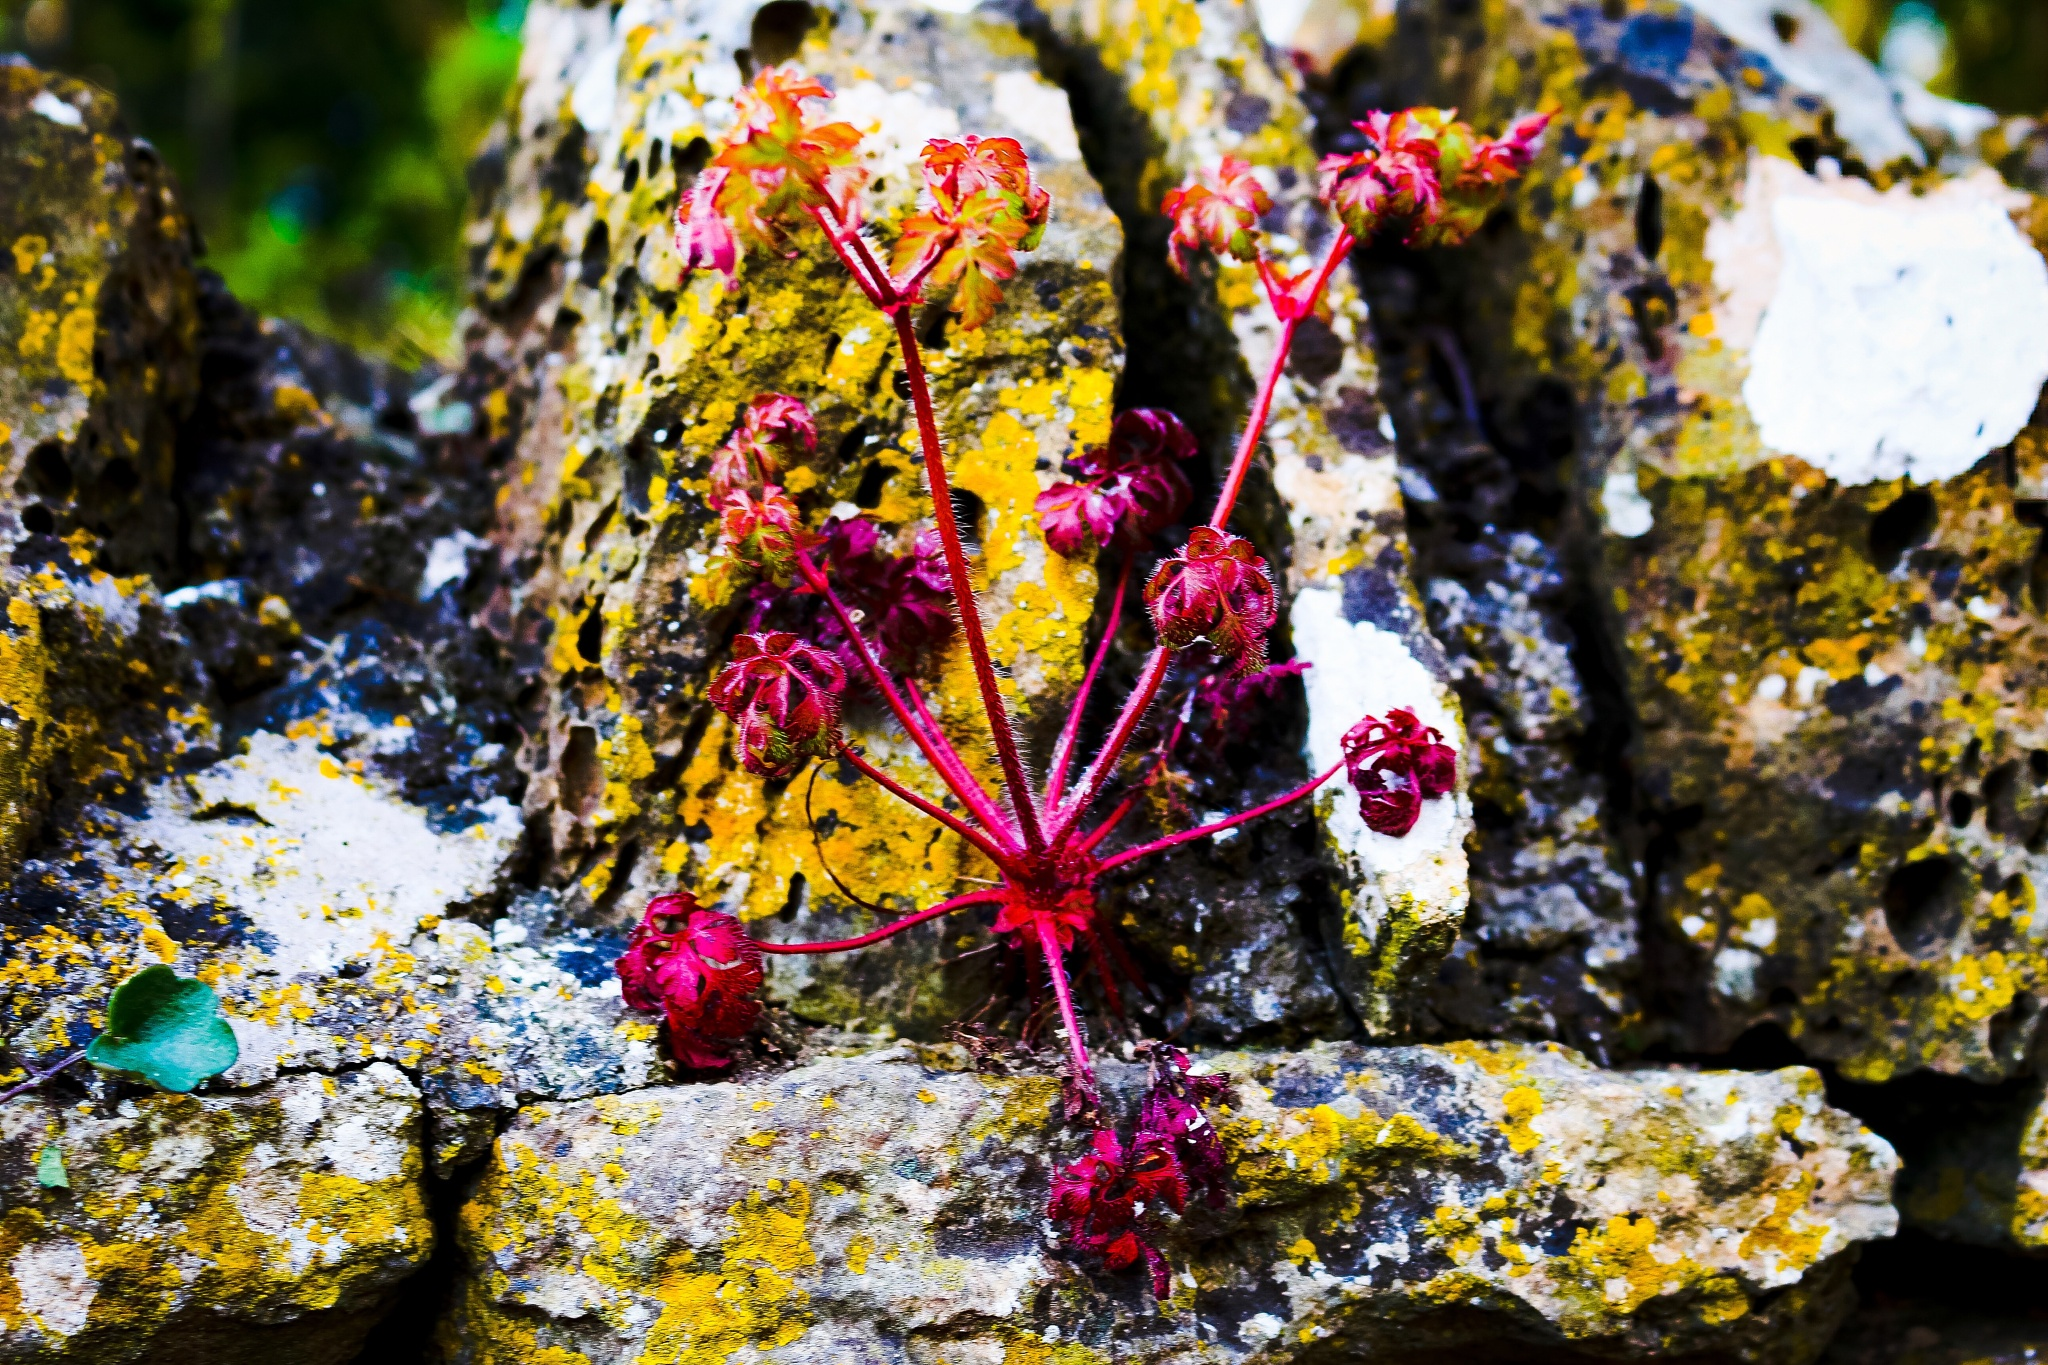 Srange things growing out of a wall by Terry Reynolds